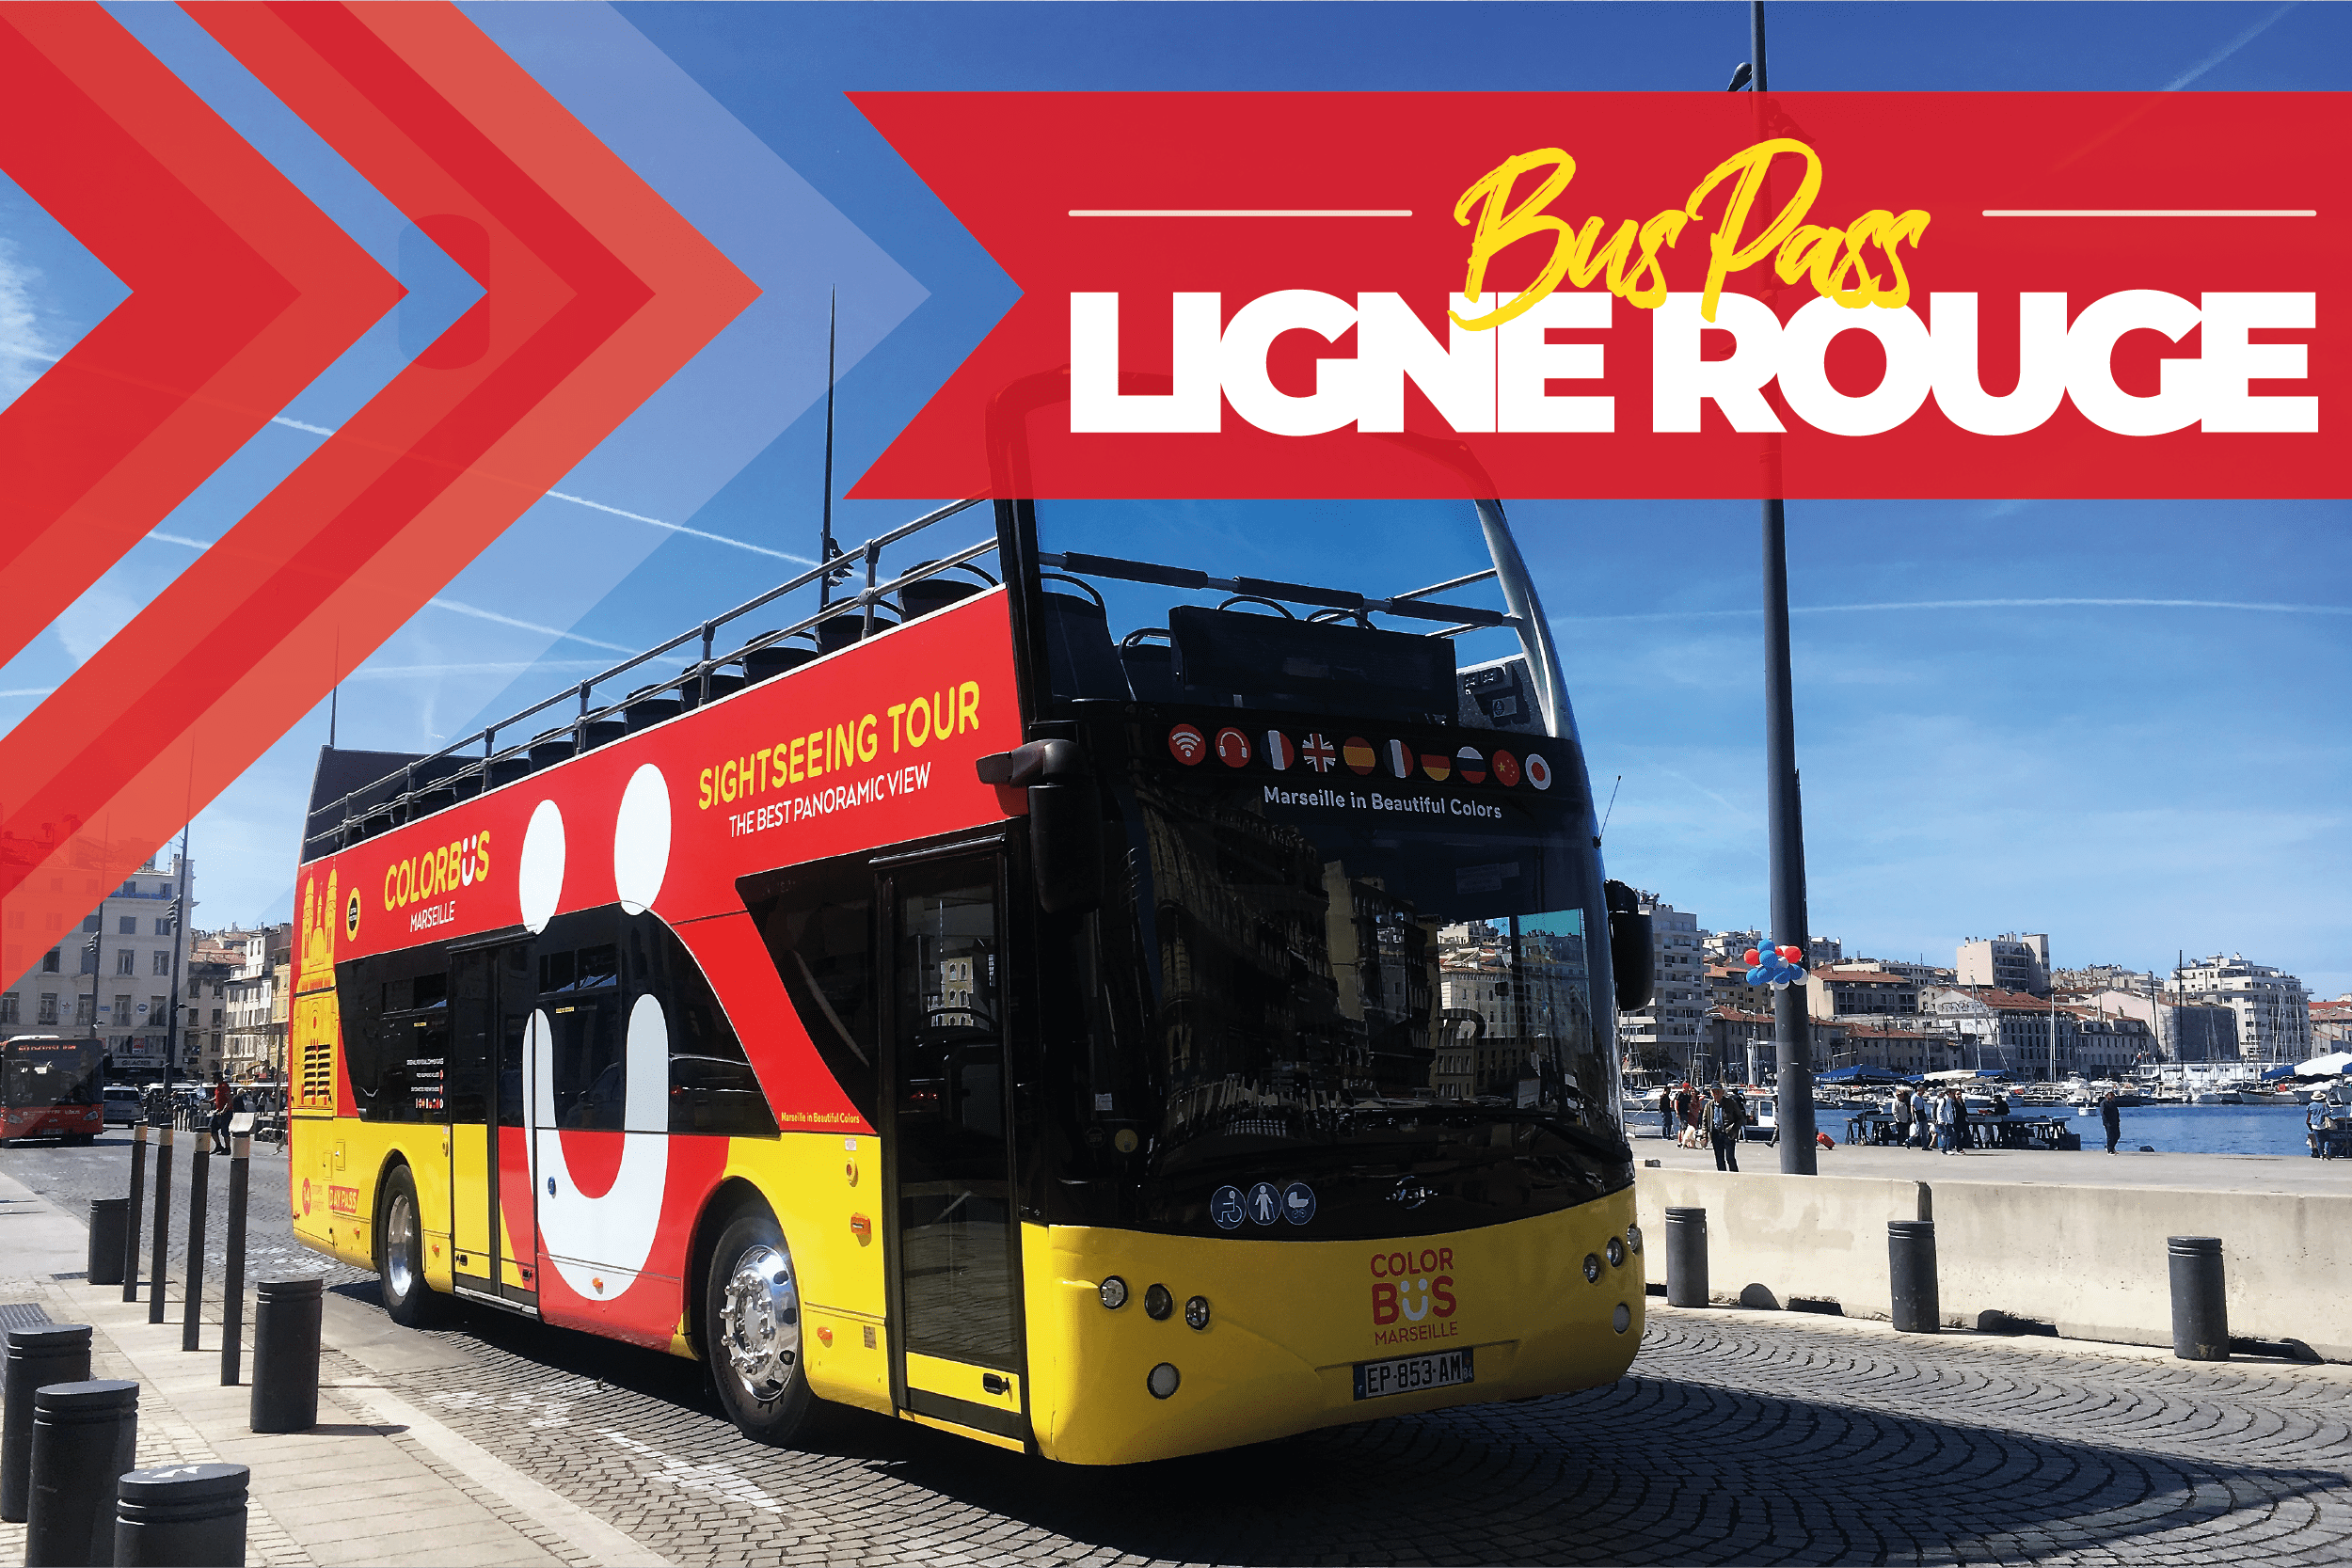 https://www.colorbus.fr/wp-content/uploads/2020/01/Bus-Pass-Ligne-Rouge.png